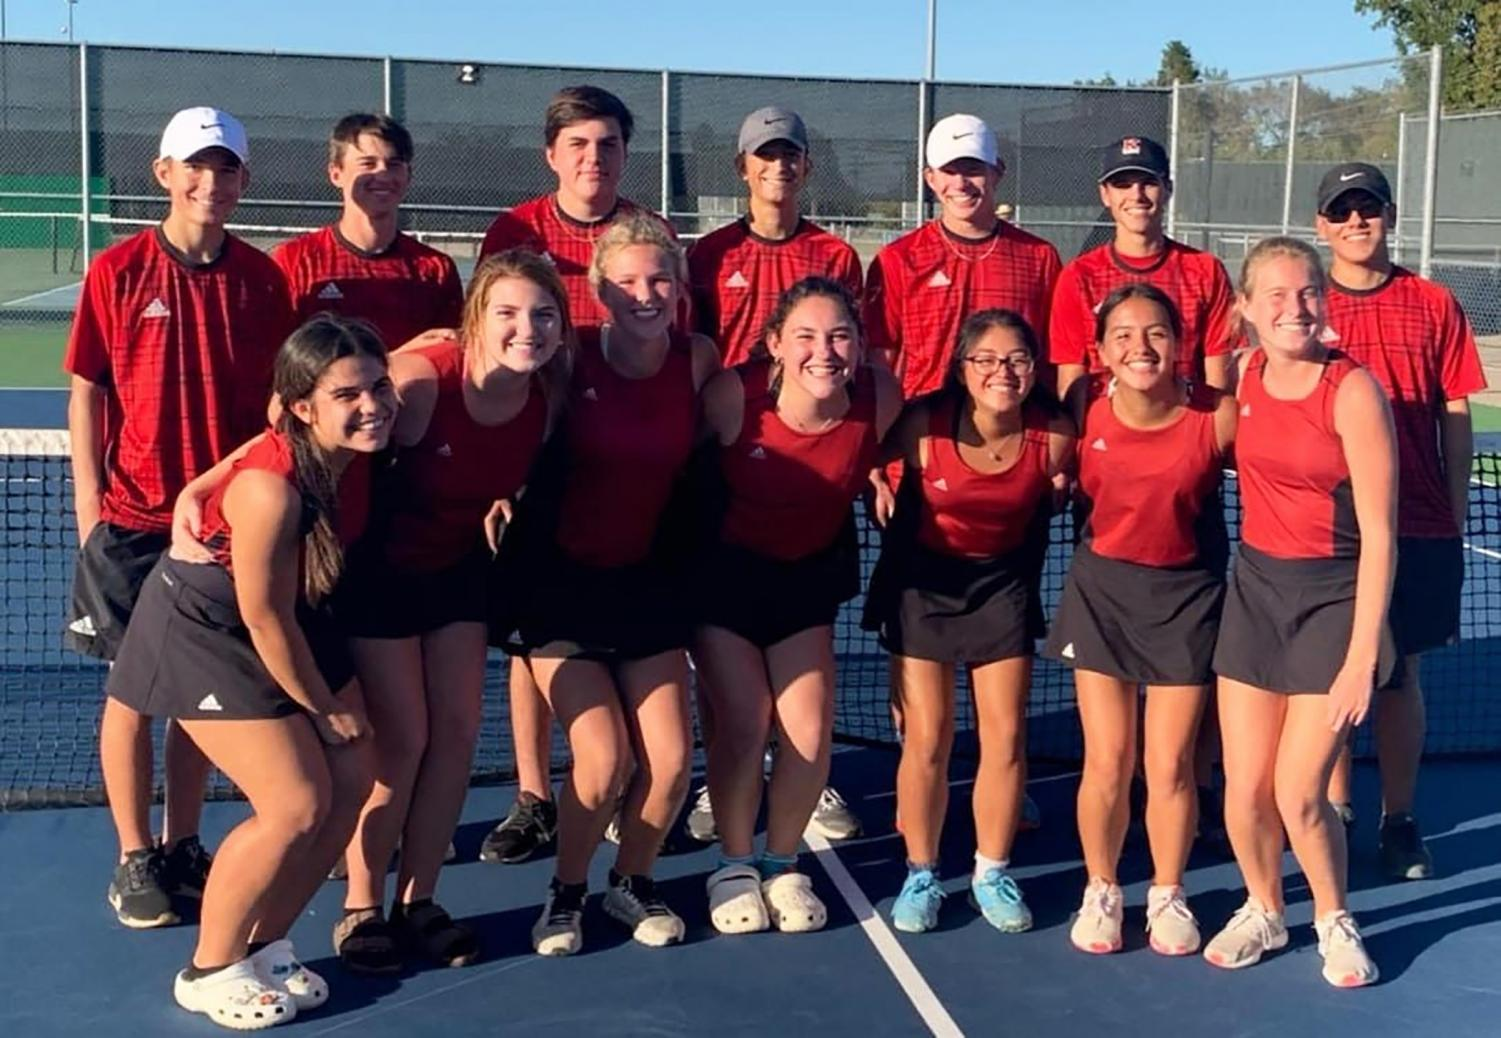 The tennis team celebrates their defeat against Crandall.